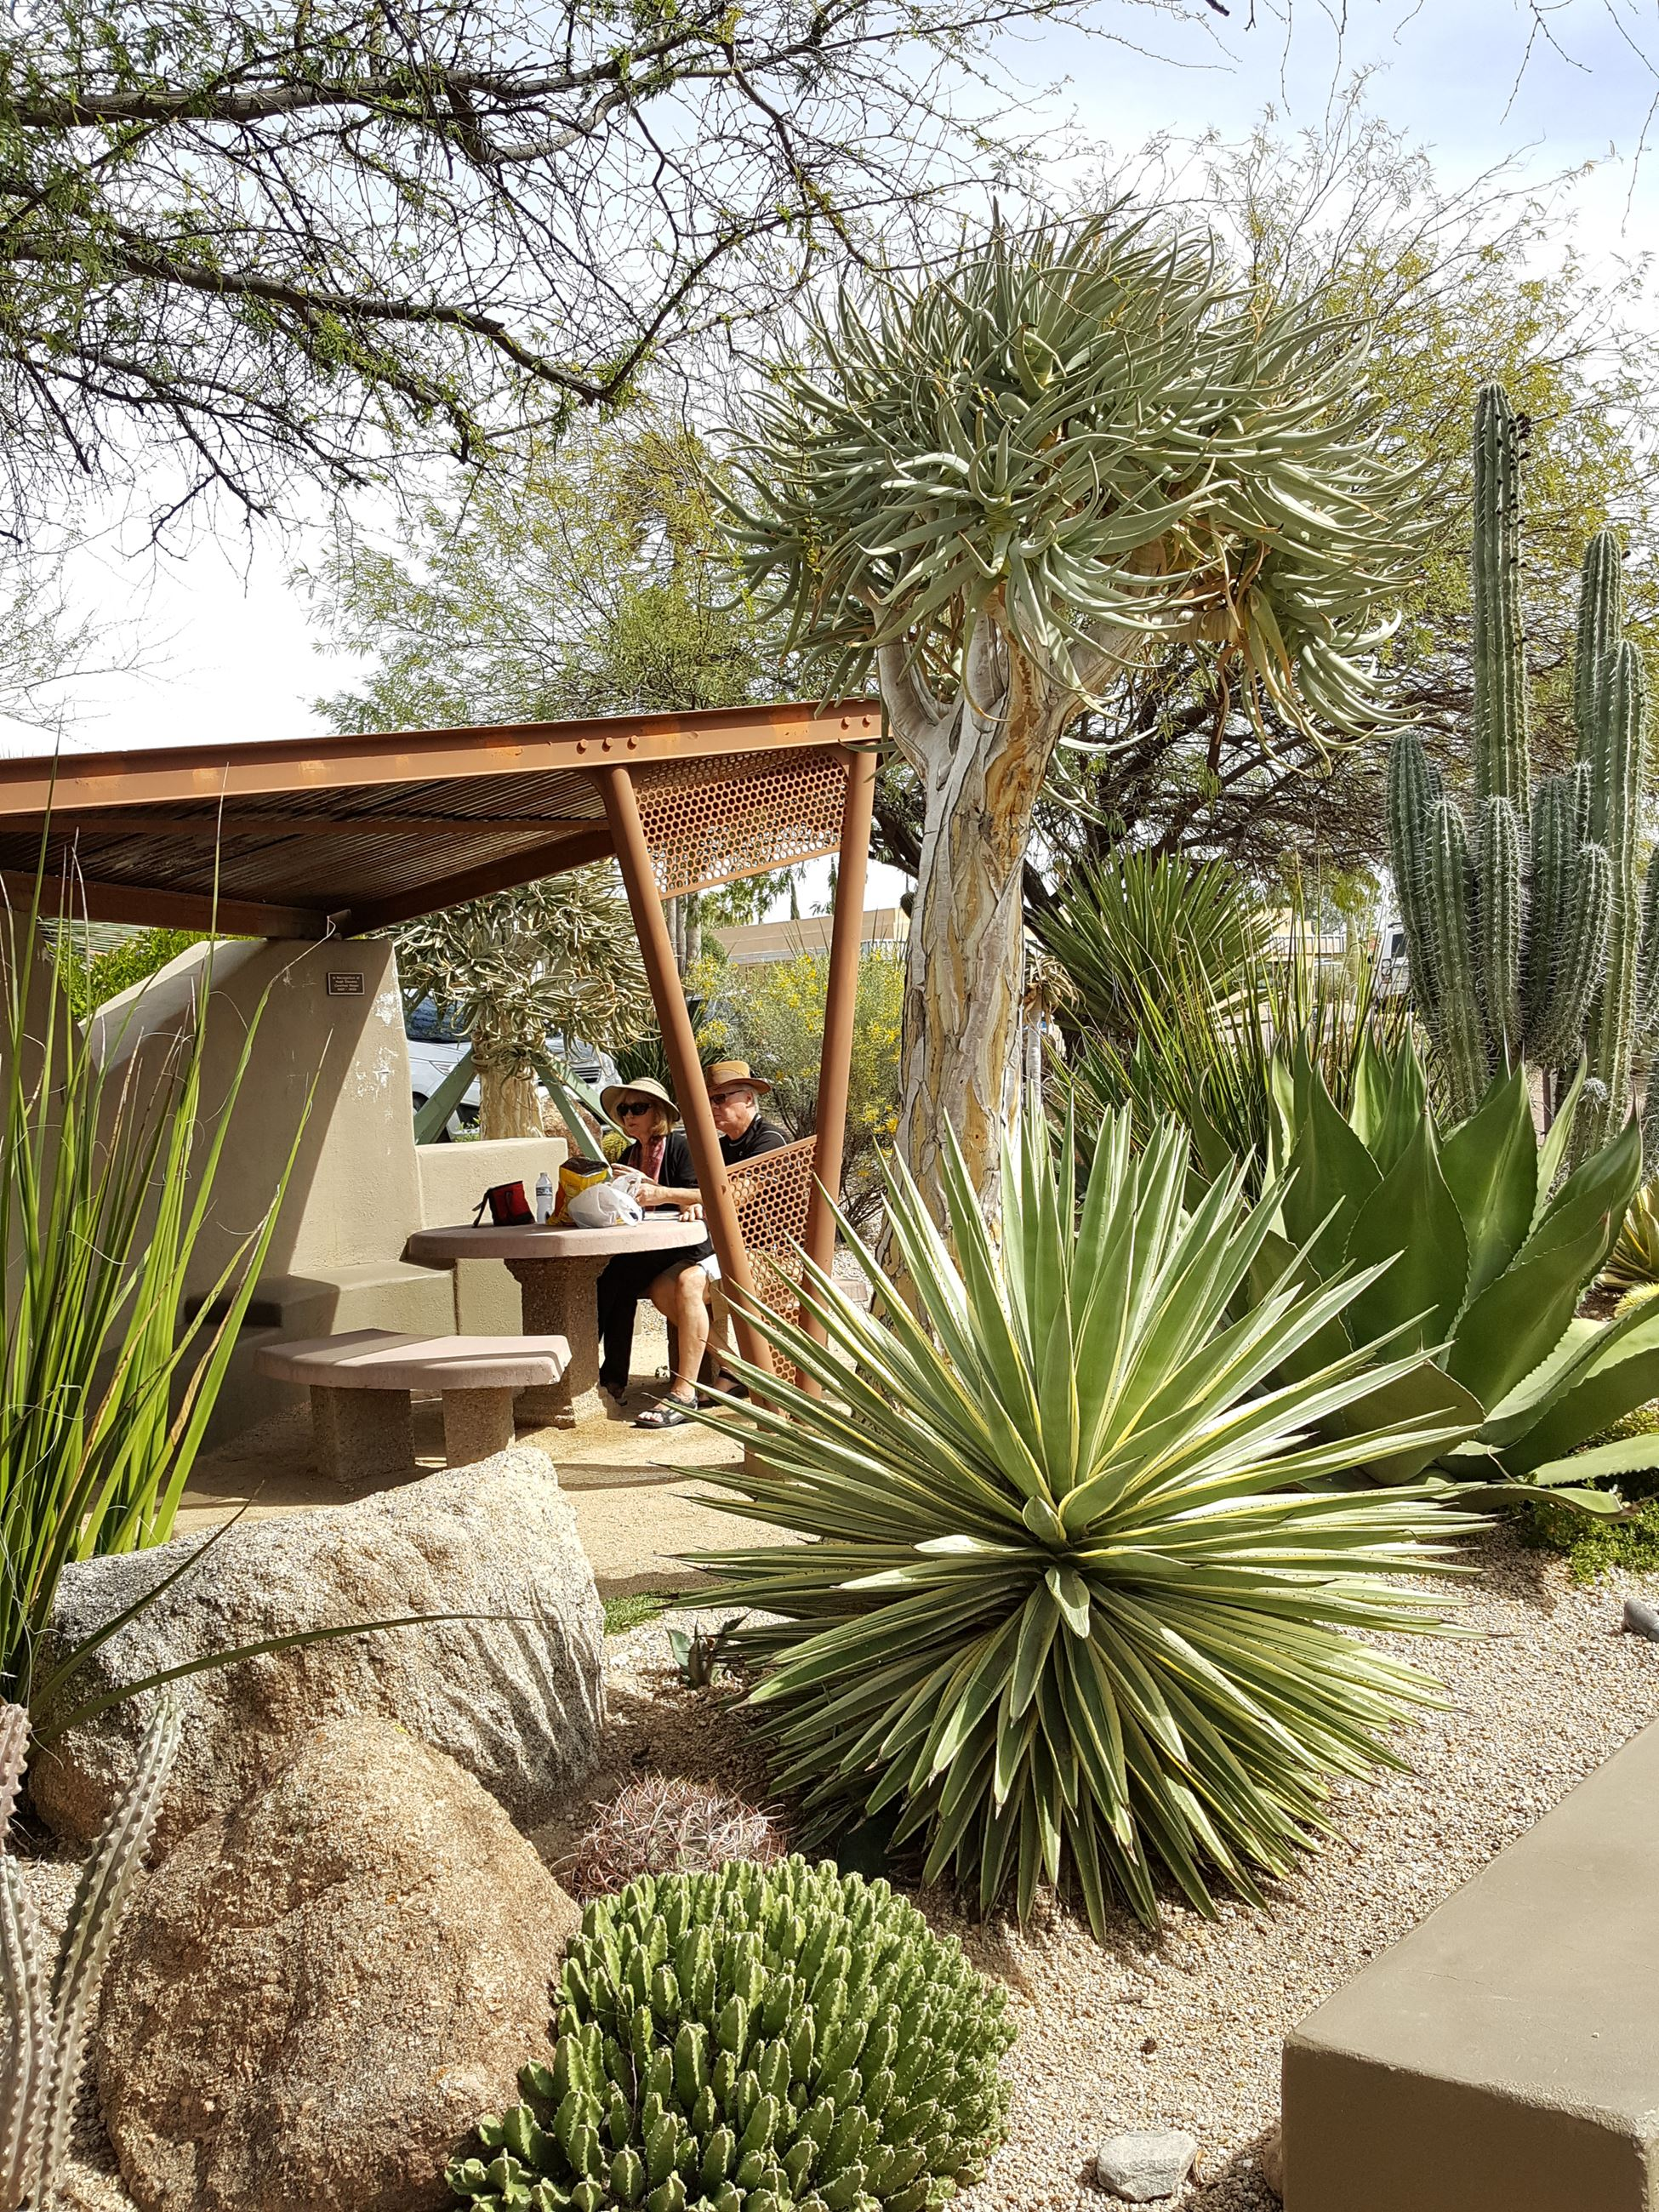 Welcome to the Carefree Desert Gardens | Carefree, AZ - Official Website